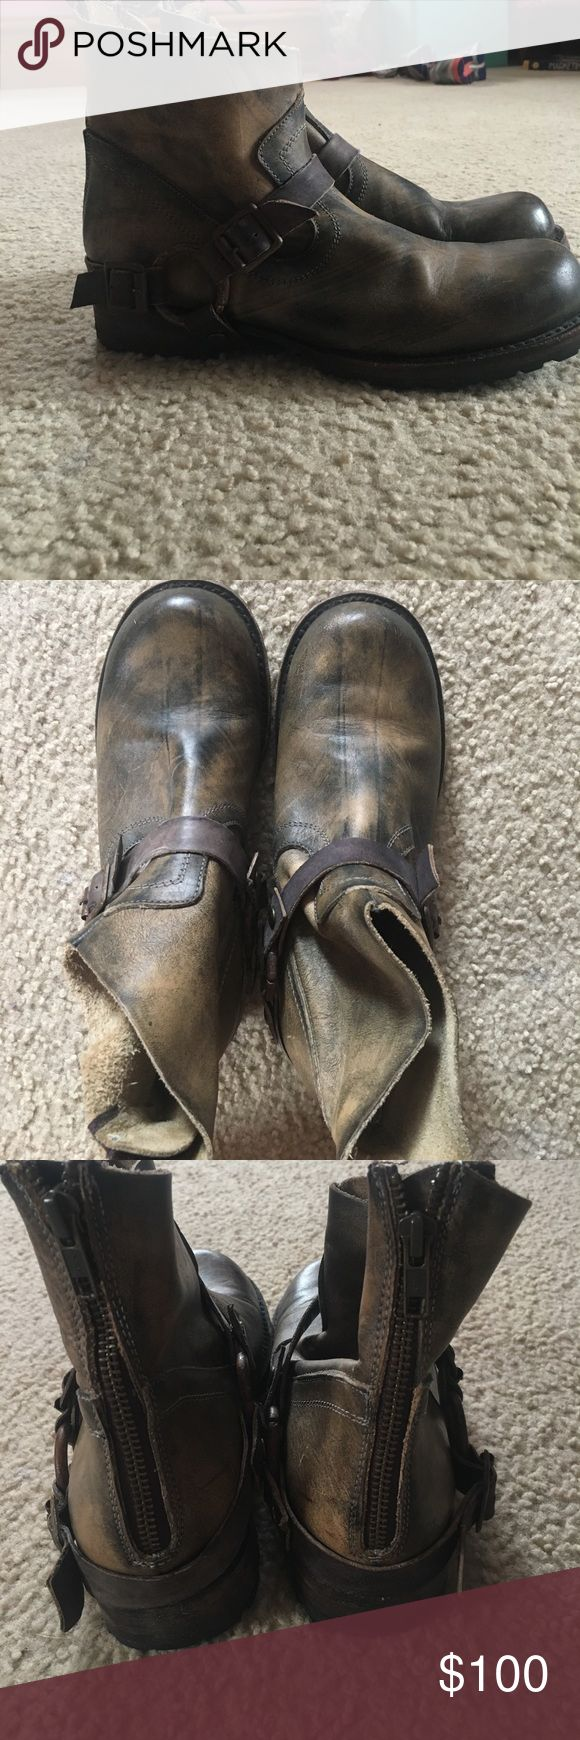 Ankle boots Freebird by Steven hatchet short ankle boots. Worn 2-3 times in great condition Freebird by Steven Shoes Ankle Boots & Booties